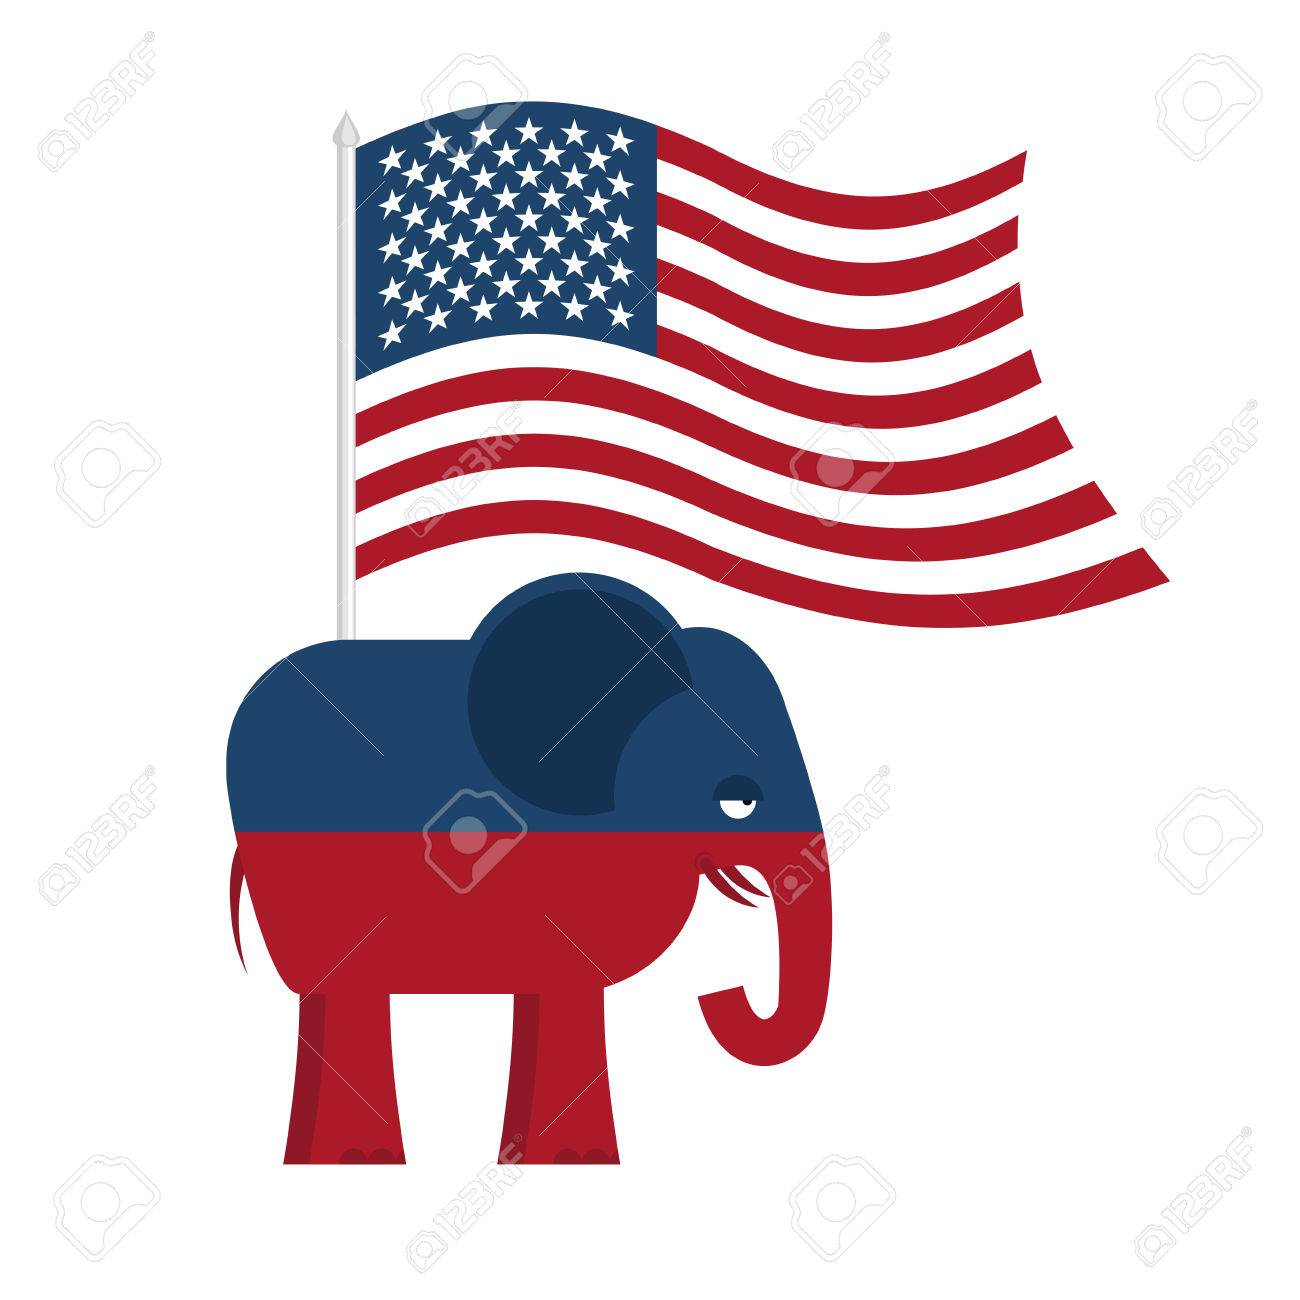 Republican Elephant Symbol Of Political Party In America Political